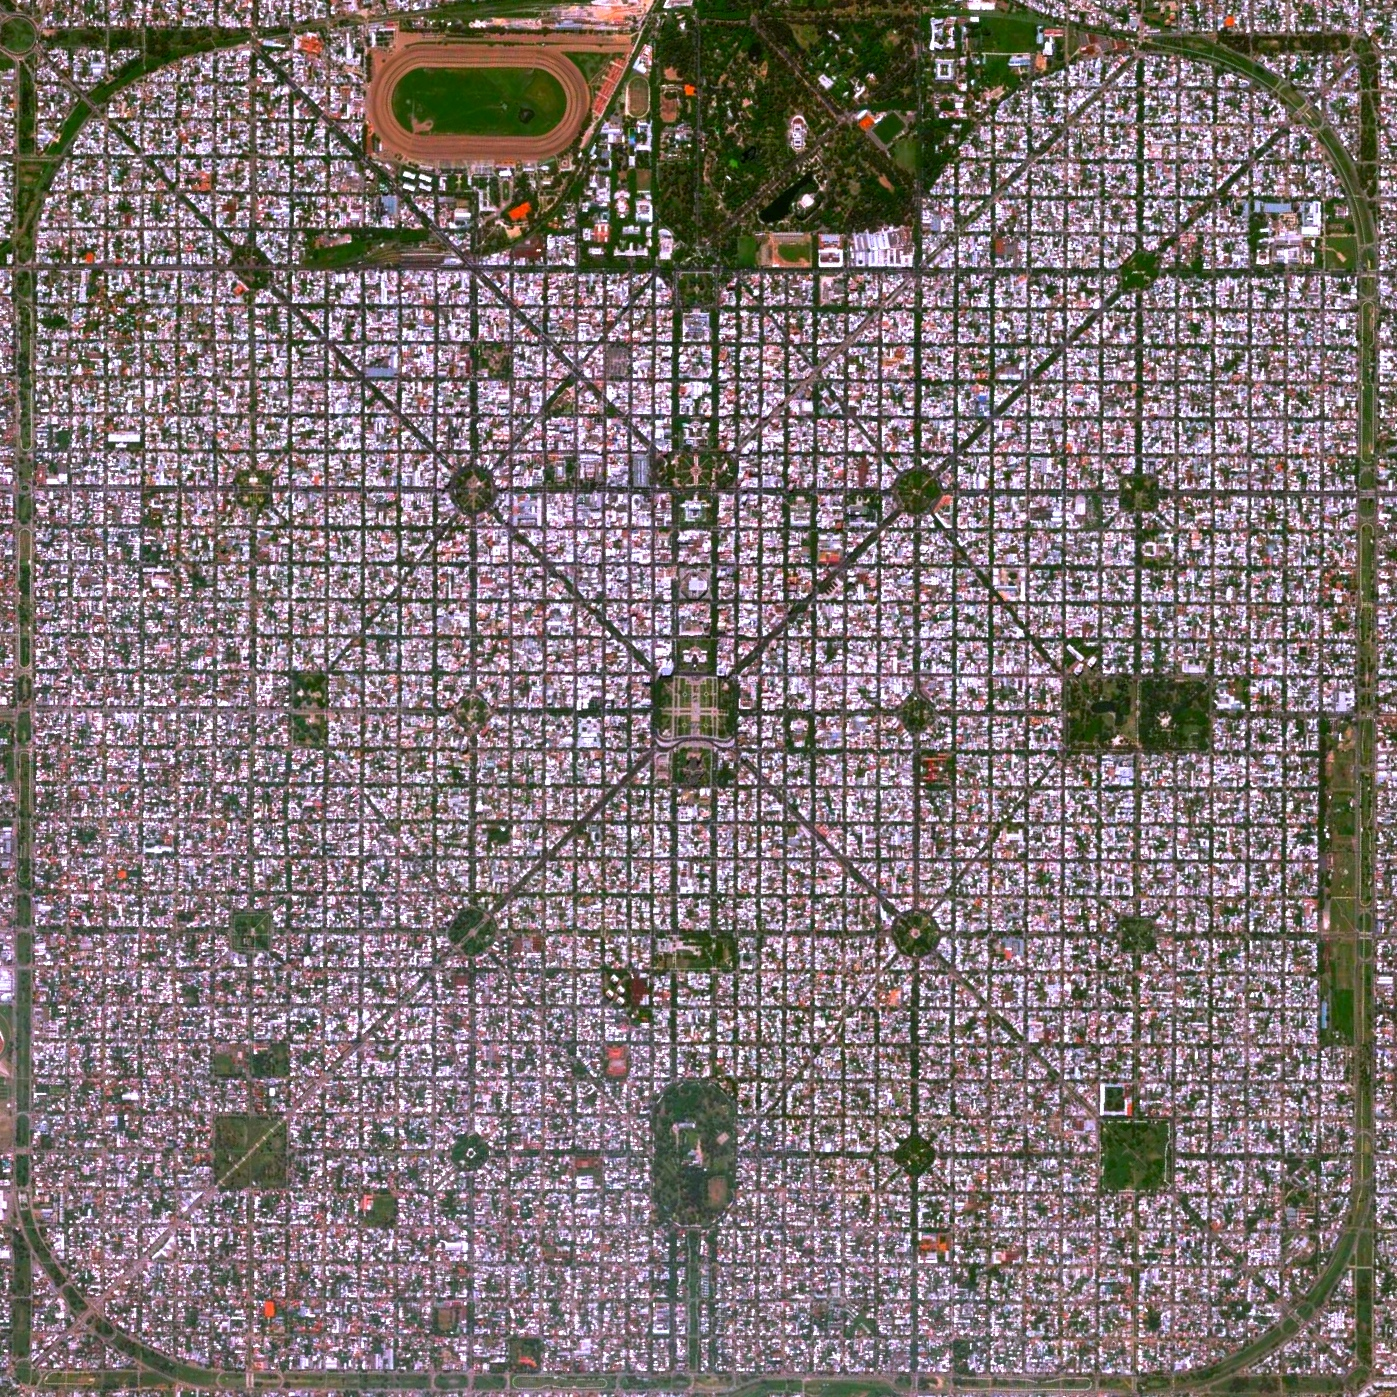 """5/3/2015   La Plata   Buenos, Aires, Argentina  34°55′16″S 57°57′16″W    The planned city of La Plata, the capital city of the Province of Buenos Aires, is characterized by its strict grid pattern. At the 1889 World's Fair in Paris, the new city was awarded two gold medals for the """"City of the Future"""" and """"Better performance built."""""""